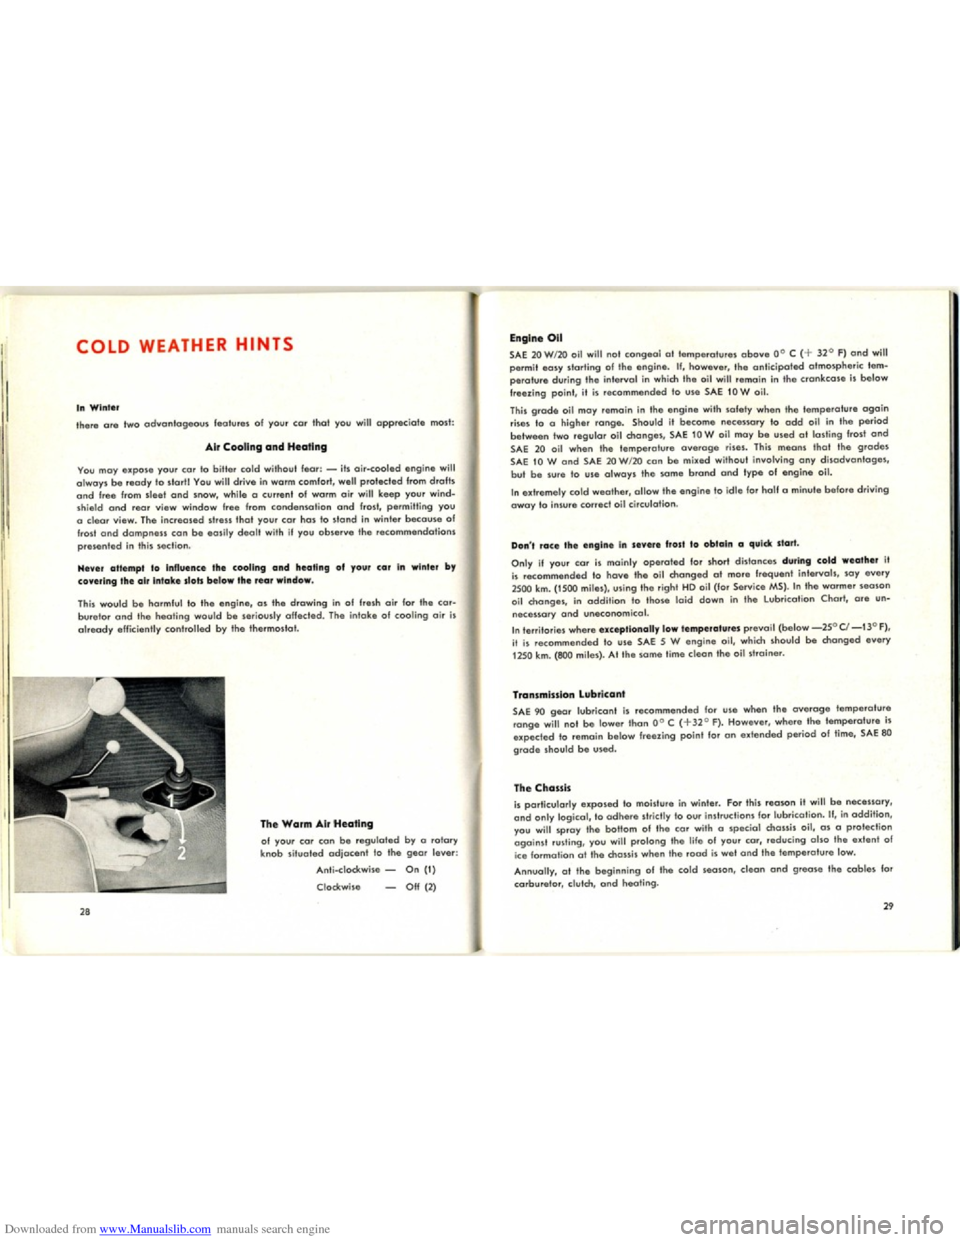 VOLKSWAGEN KARMANN GHIA 1958 1.G Owners Manual, Page 16